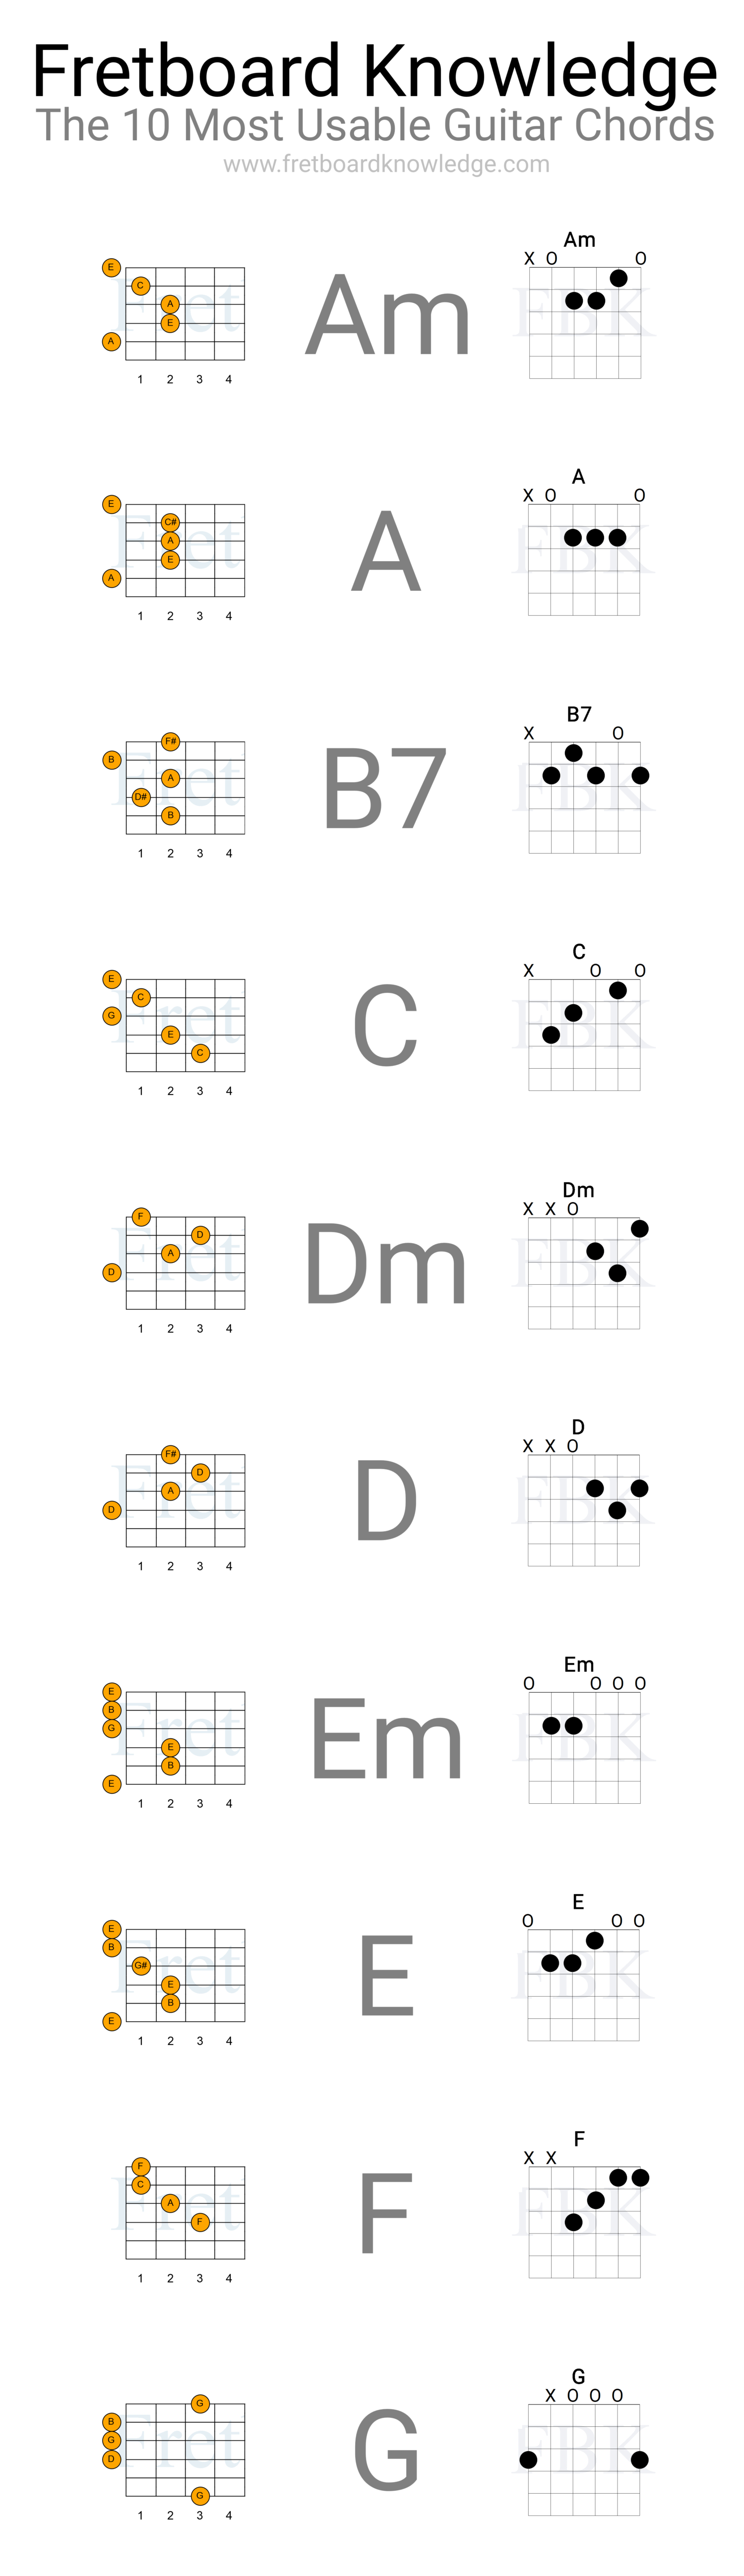 B7 Guitar Chord B7 Guitar Chord Archives Guitar Fretboard Knowledge